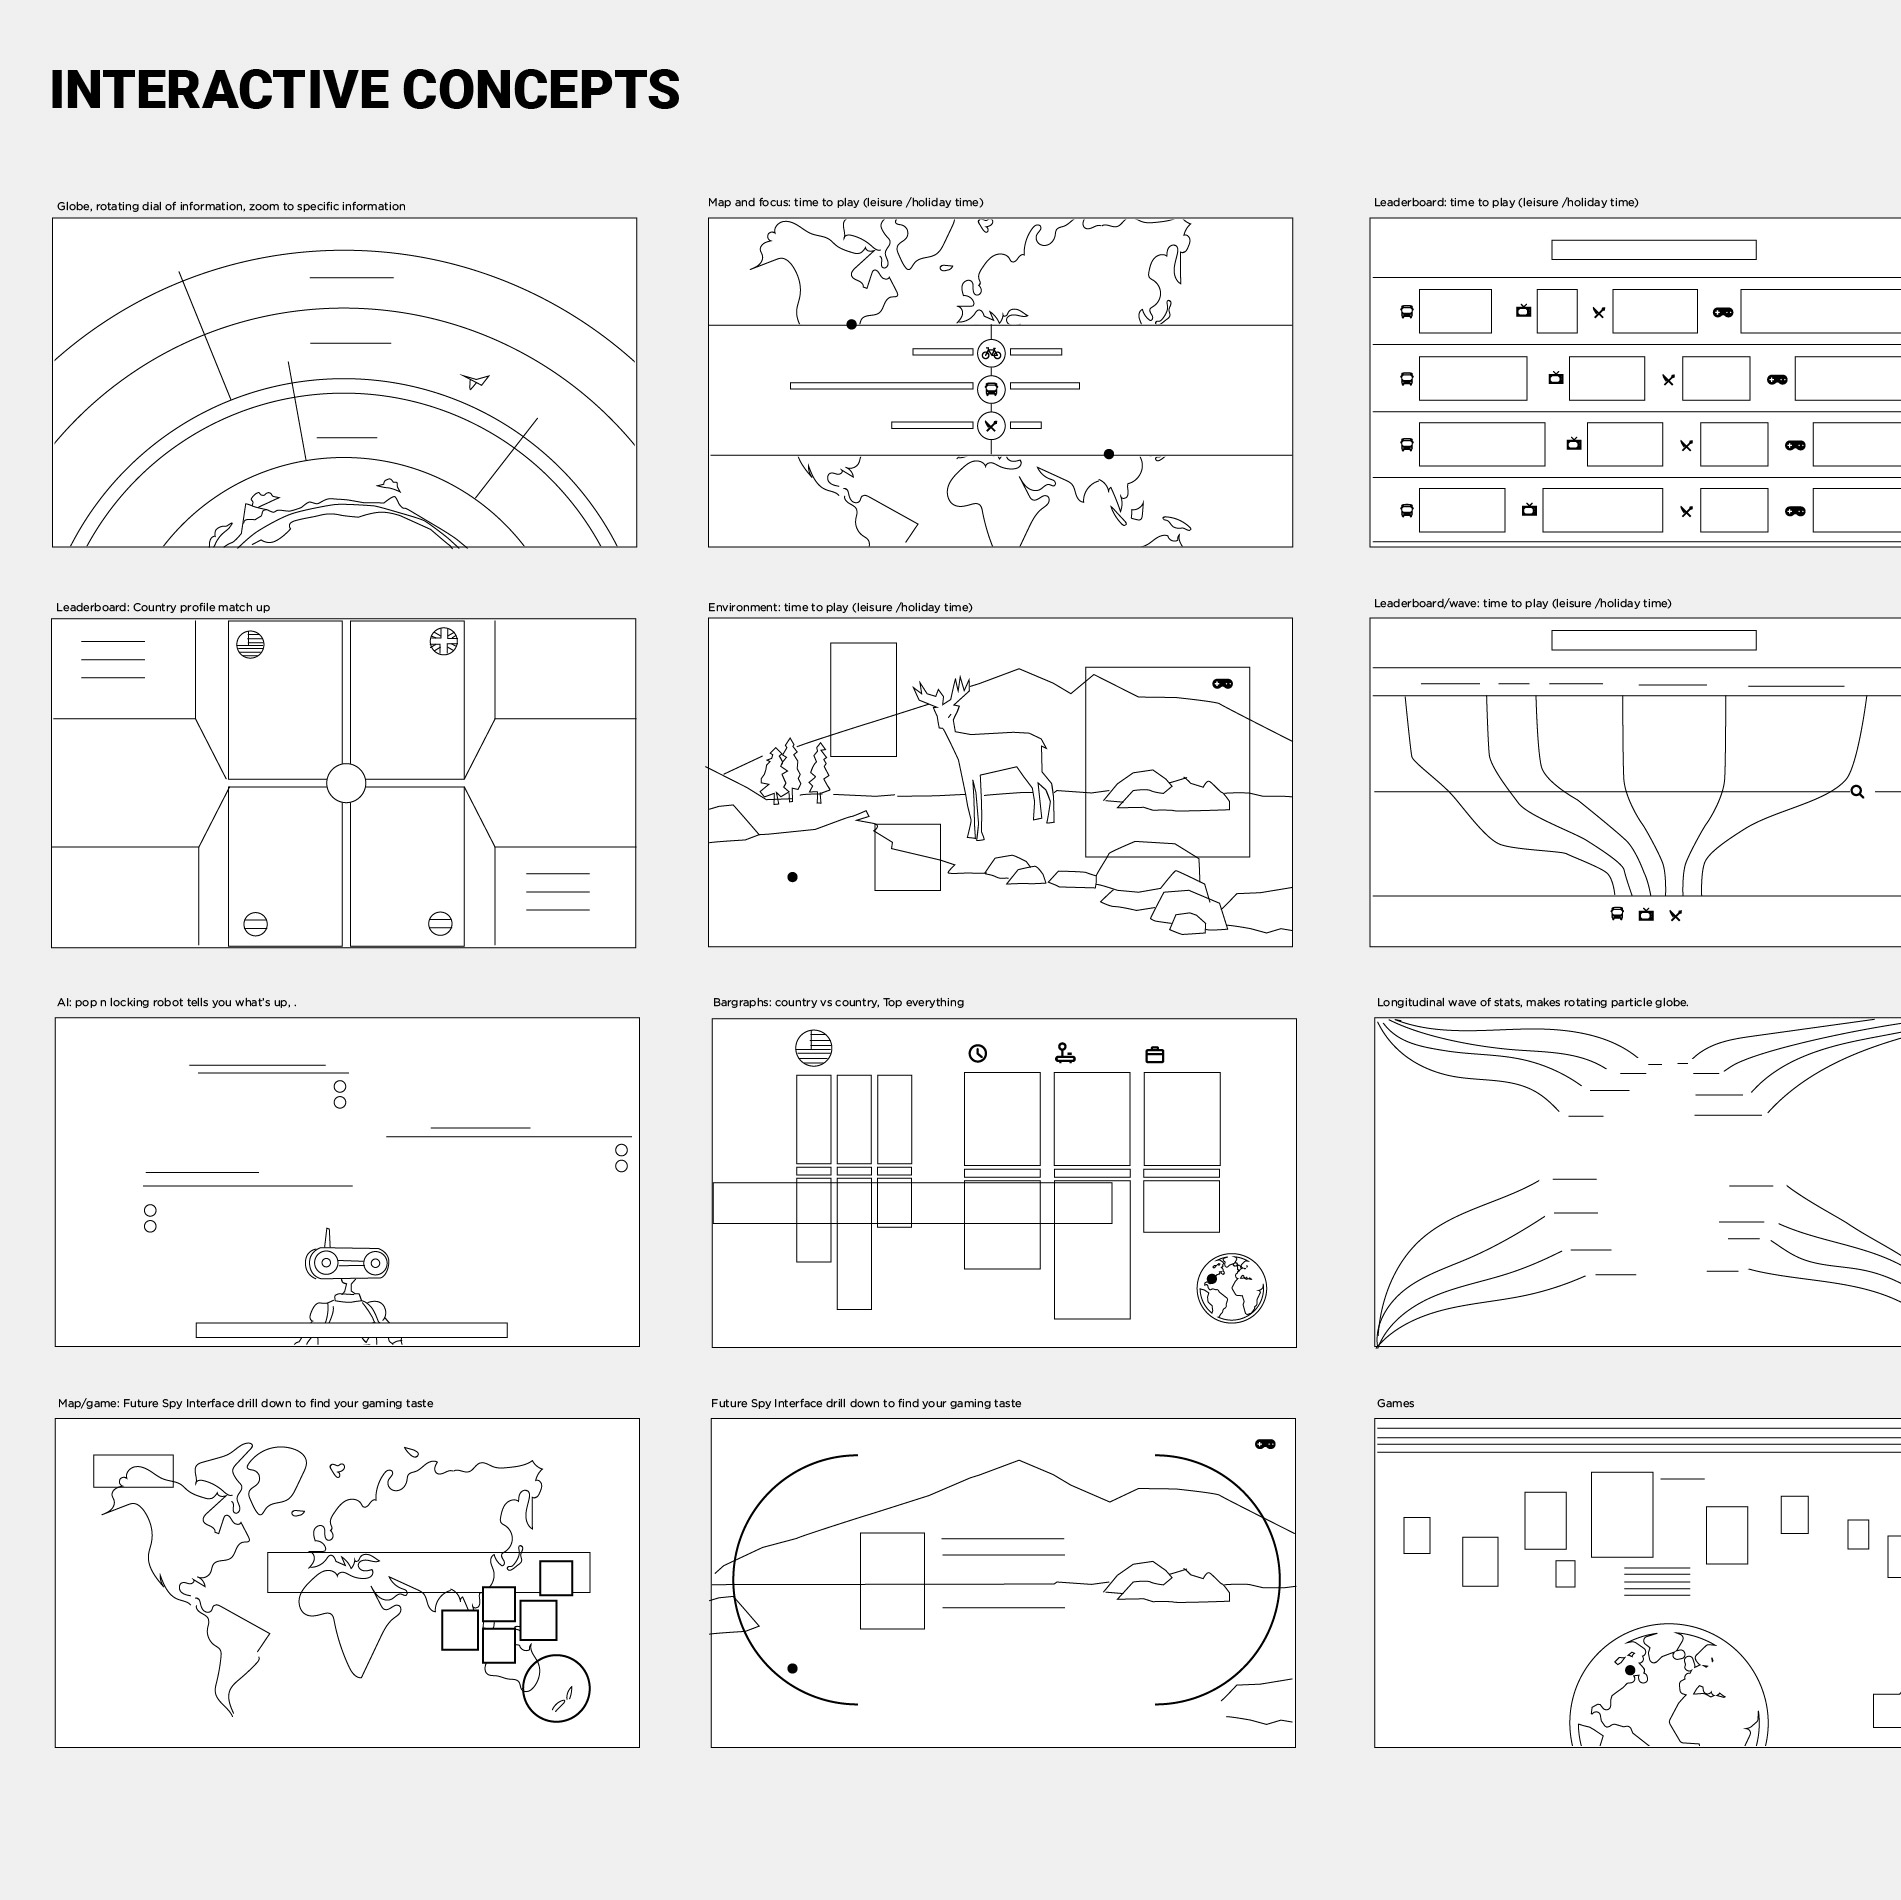 Google Play Interactive Concepts